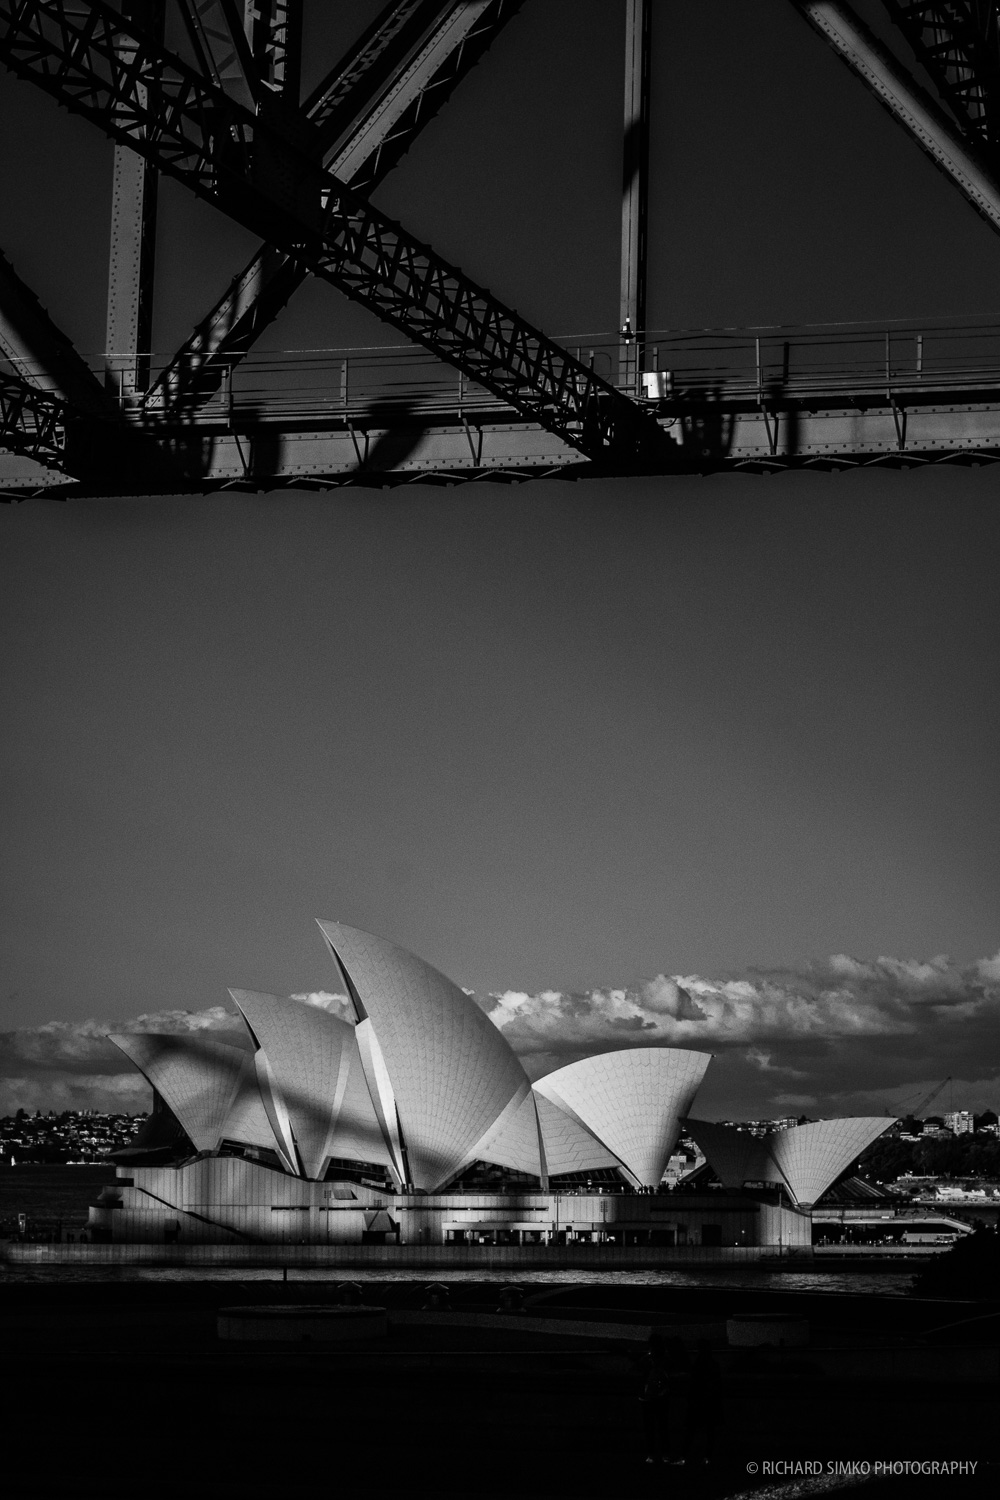 I got myself an Nikon to Fuji X adapter and took my only Nikkor lens that I have for a spin. 50mm 1.4 nifty-fifty works well on a Fujifilm camera. I got to this place just in time for Harbour Bridge cast shadow on the Opera House. I thought is a natural Vivid Sydney but then again, the photograph worked much better in Black and Whine.